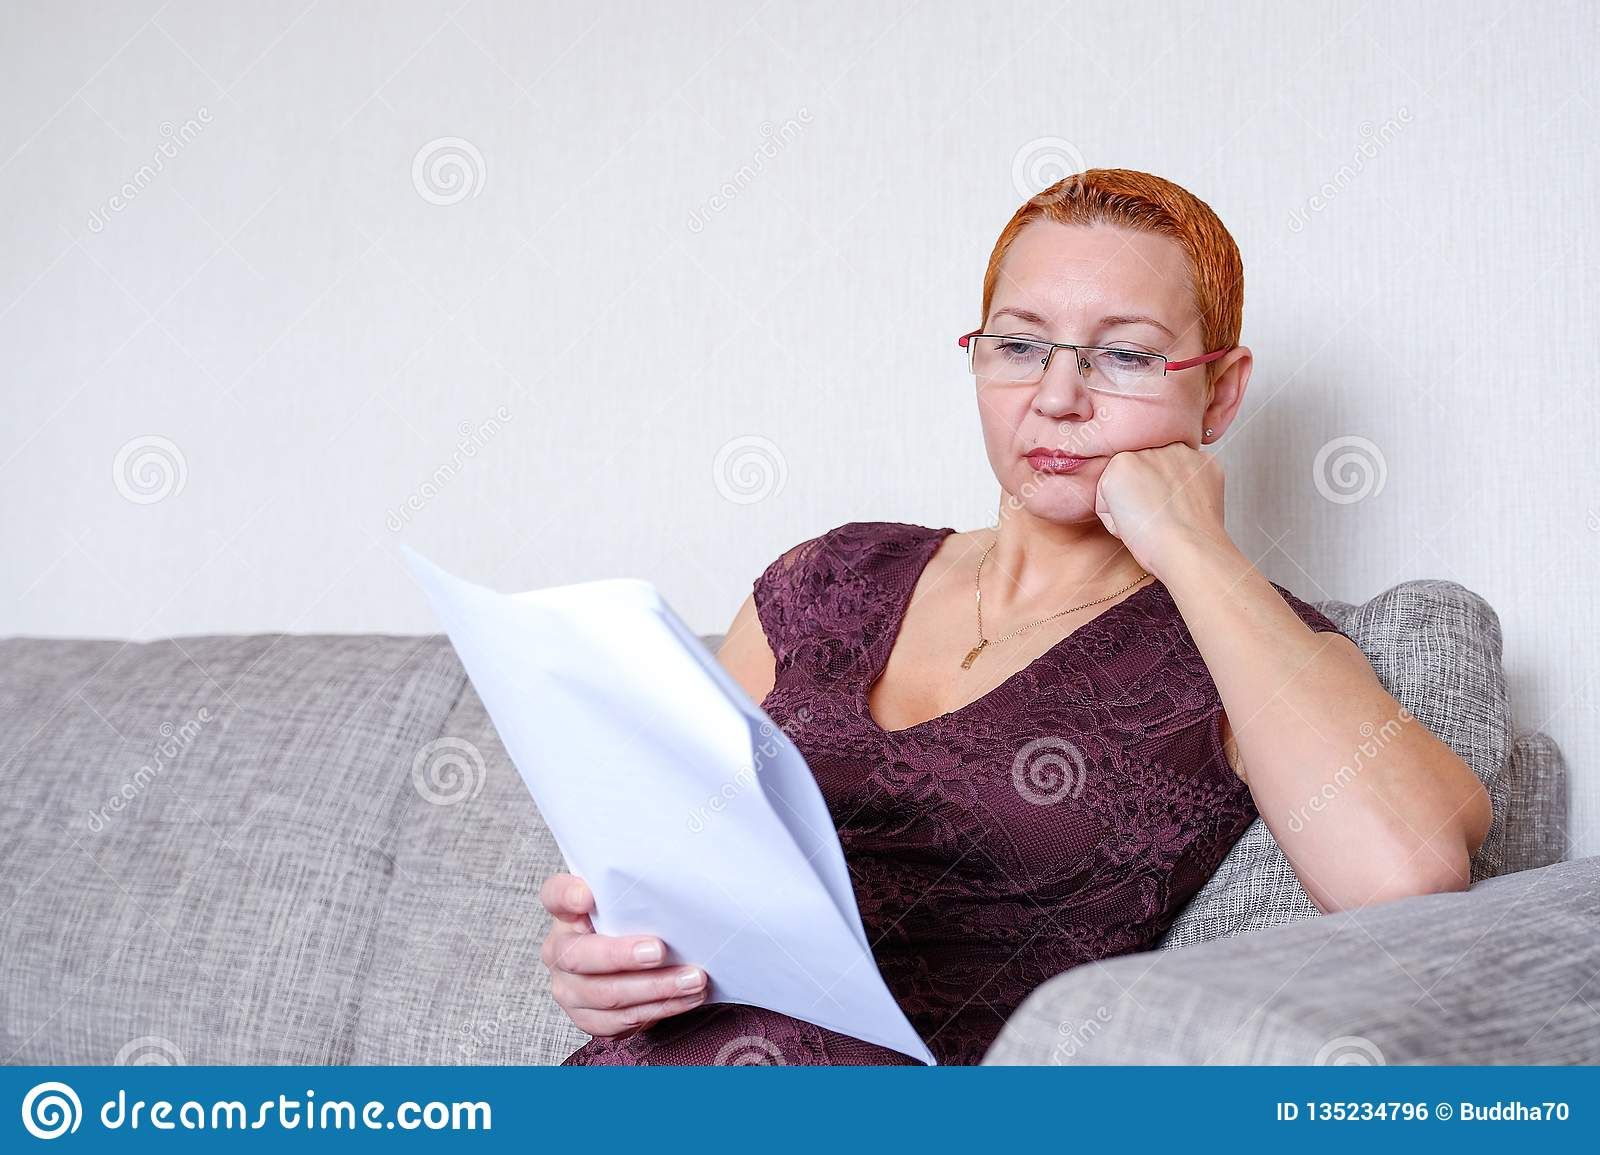 Beautiful girl with glasses looking through tax documents. Emotion of concentration. Serious regulations